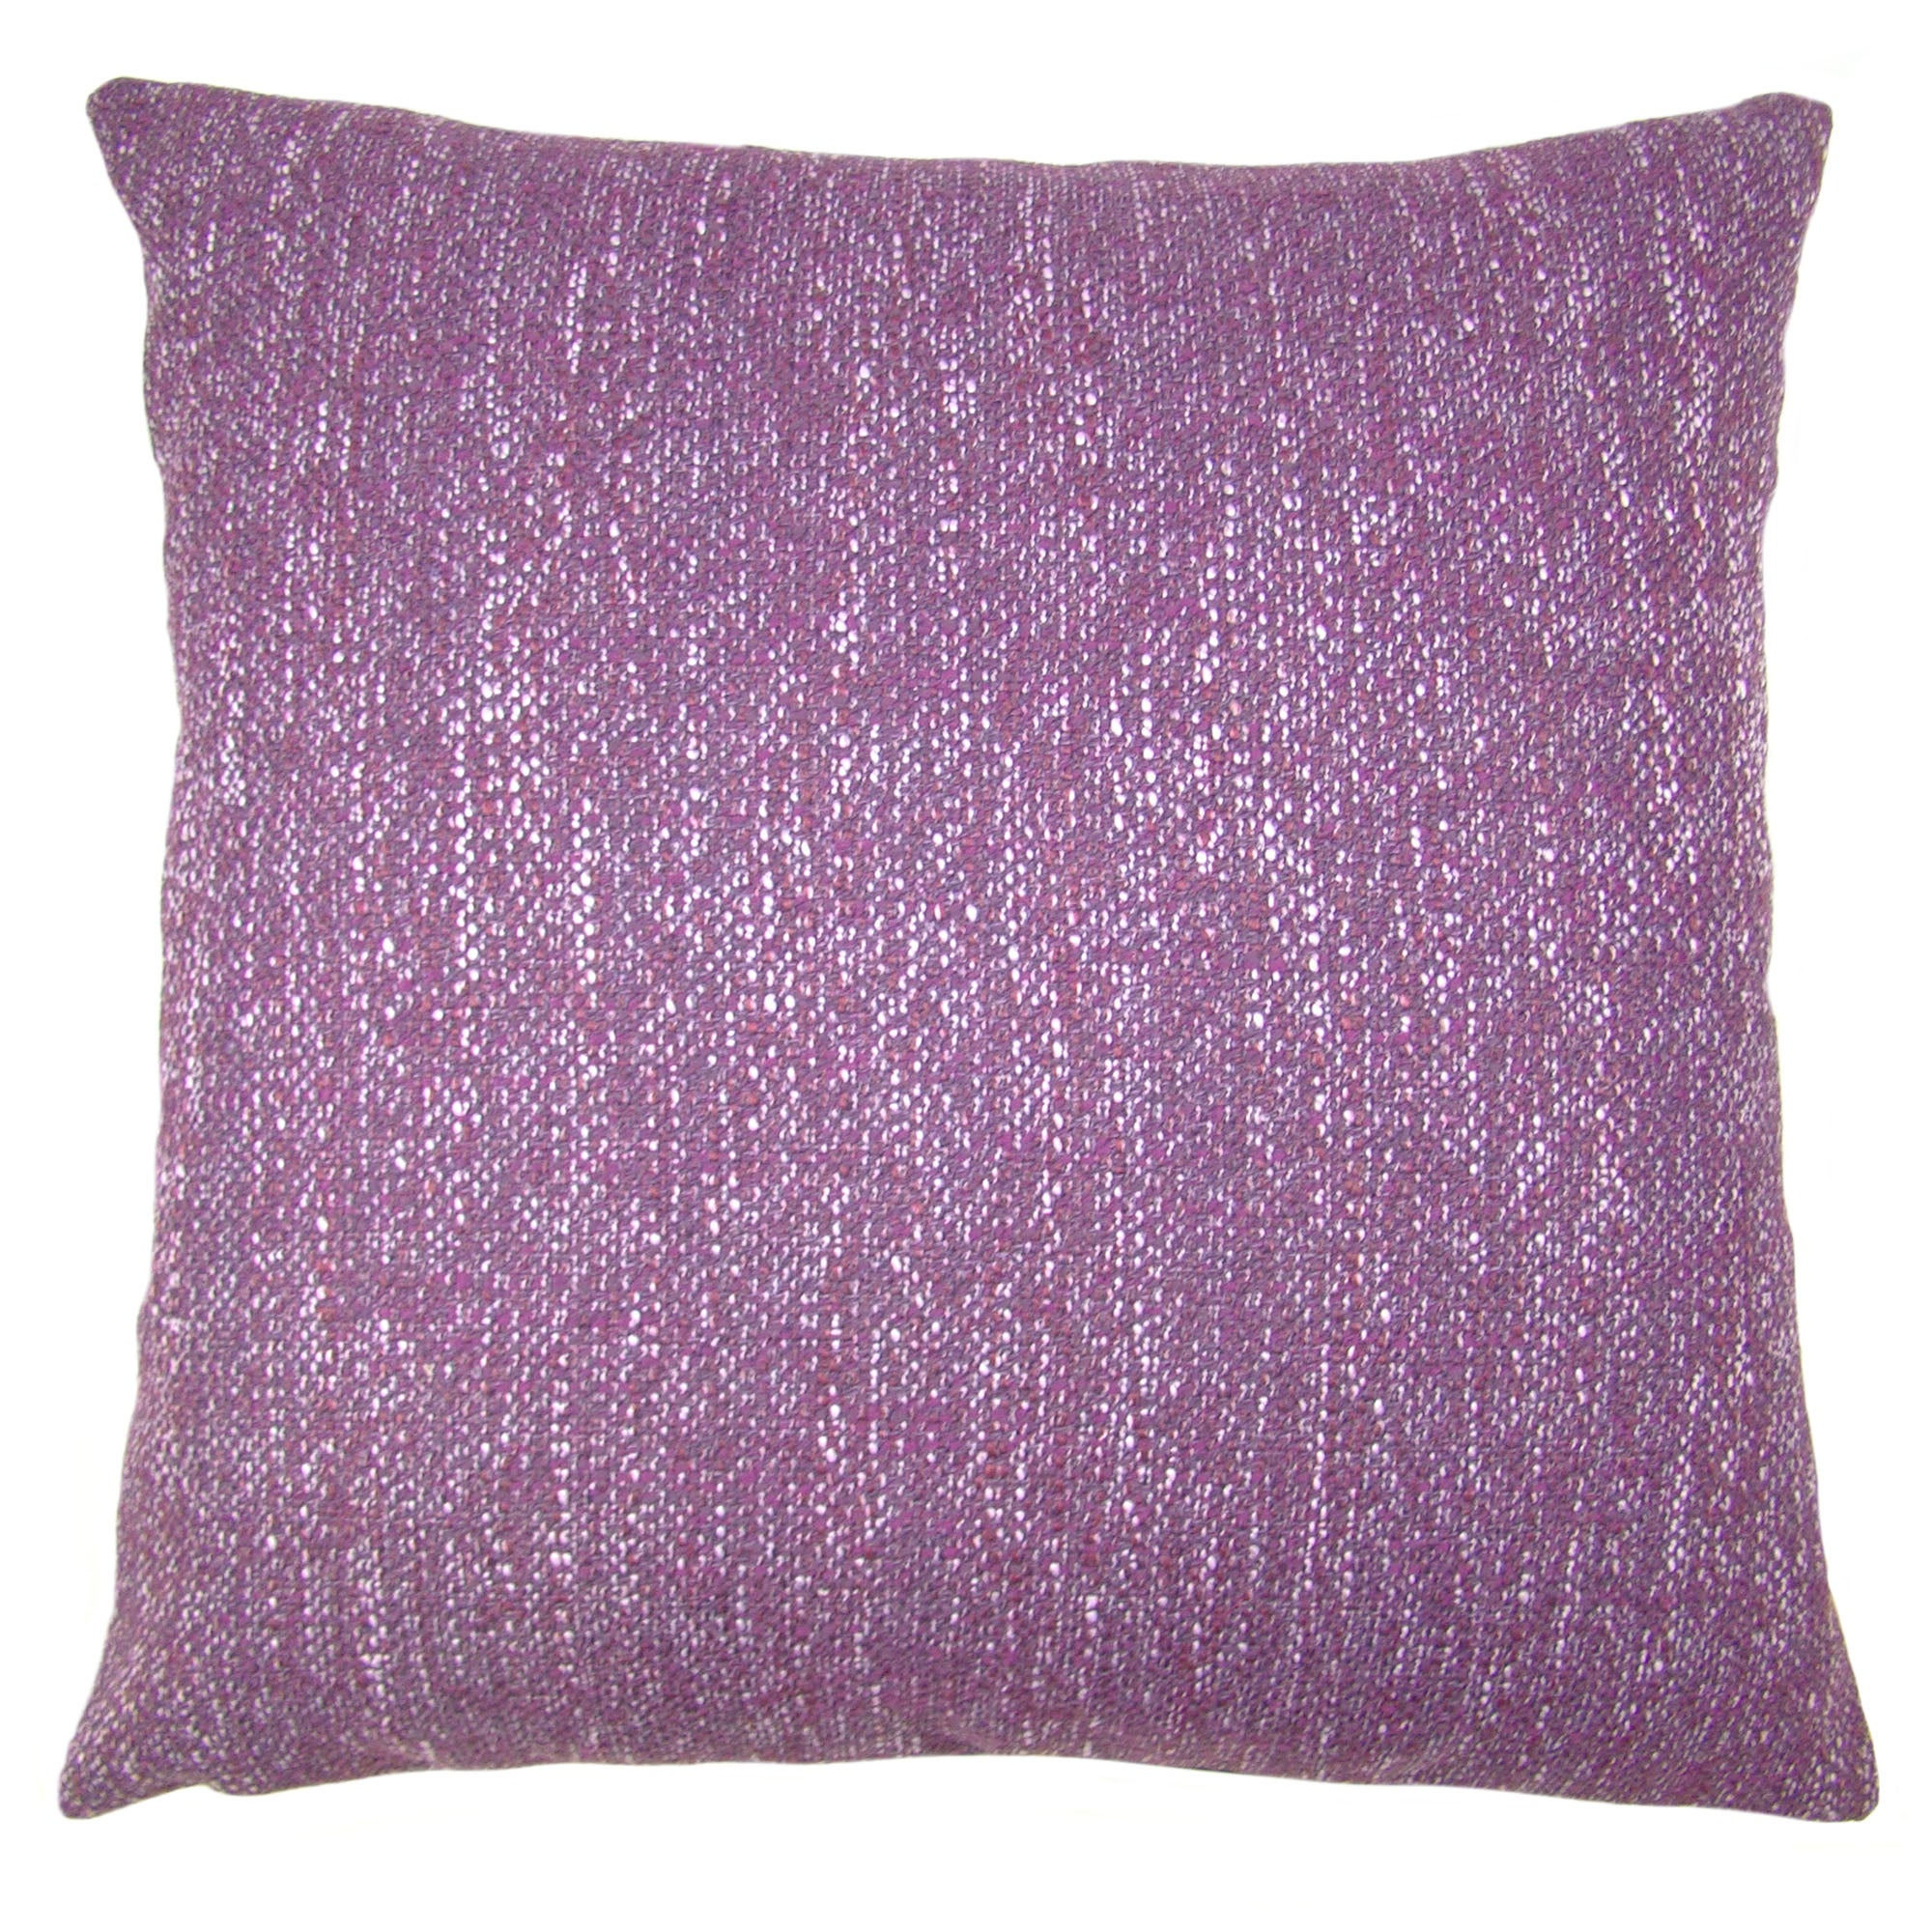 Photo of Carly cushion cover grape -purple-